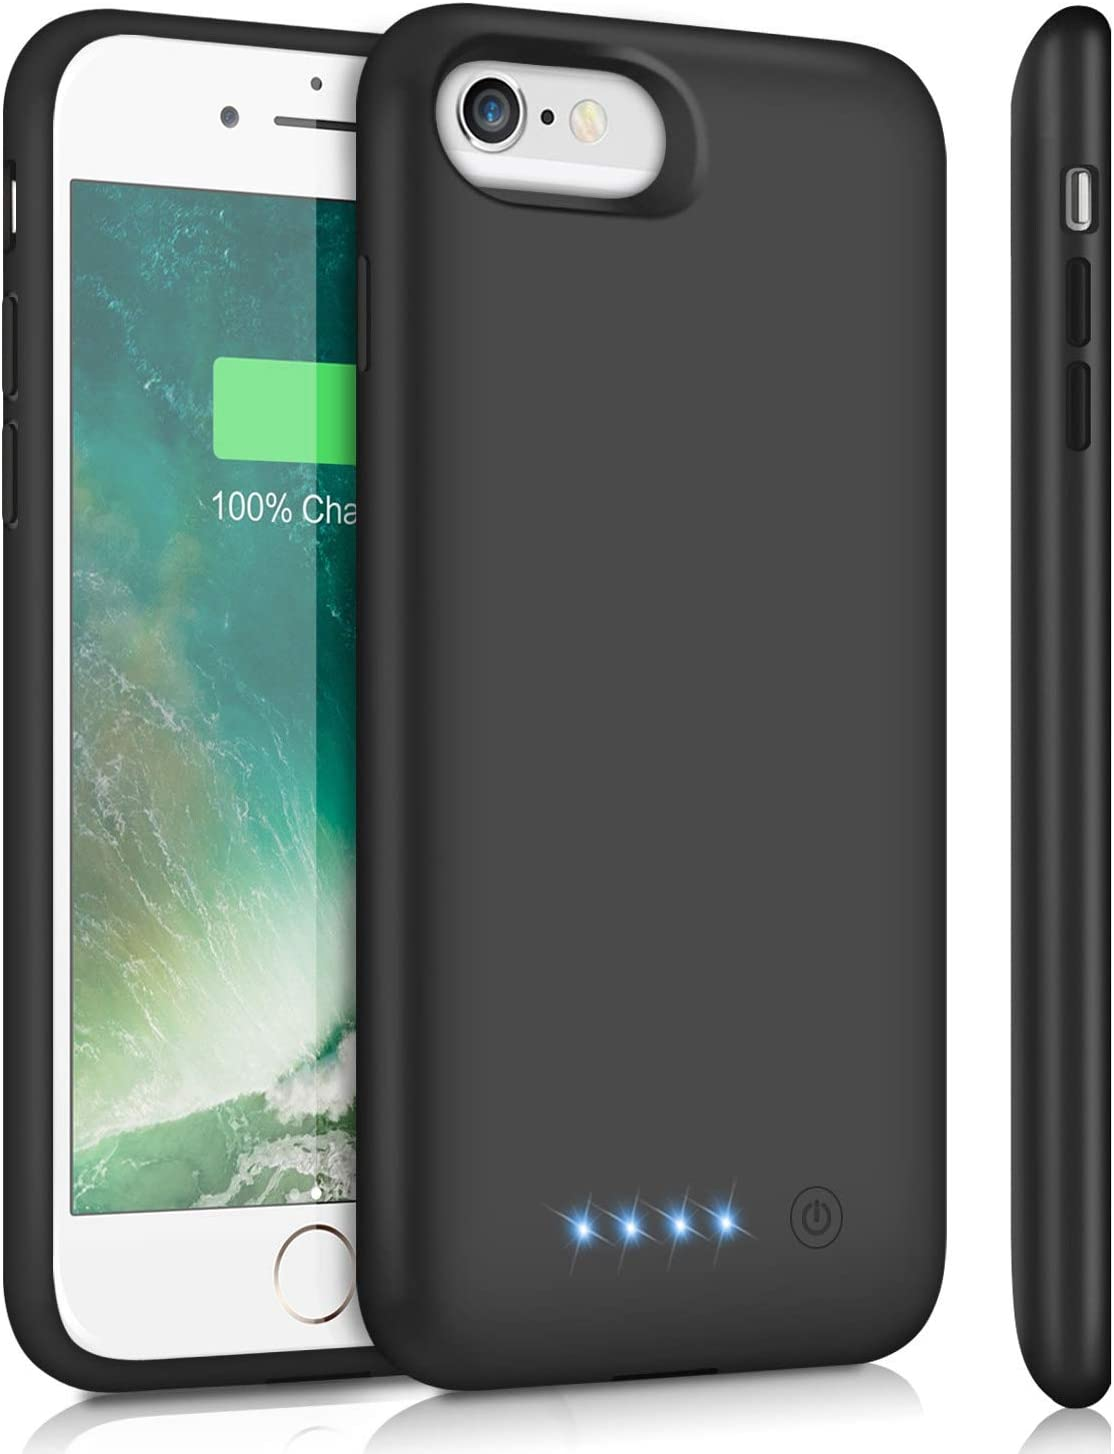 HETP Battery Case for iPhone 6S 6,Upgraded 6000mAh Rechargeable Charging Case for iPhone 6 External Battery Pack for iPhone 6S Charger Cover Apple Portable Power Bank [4.7 inch]- Black